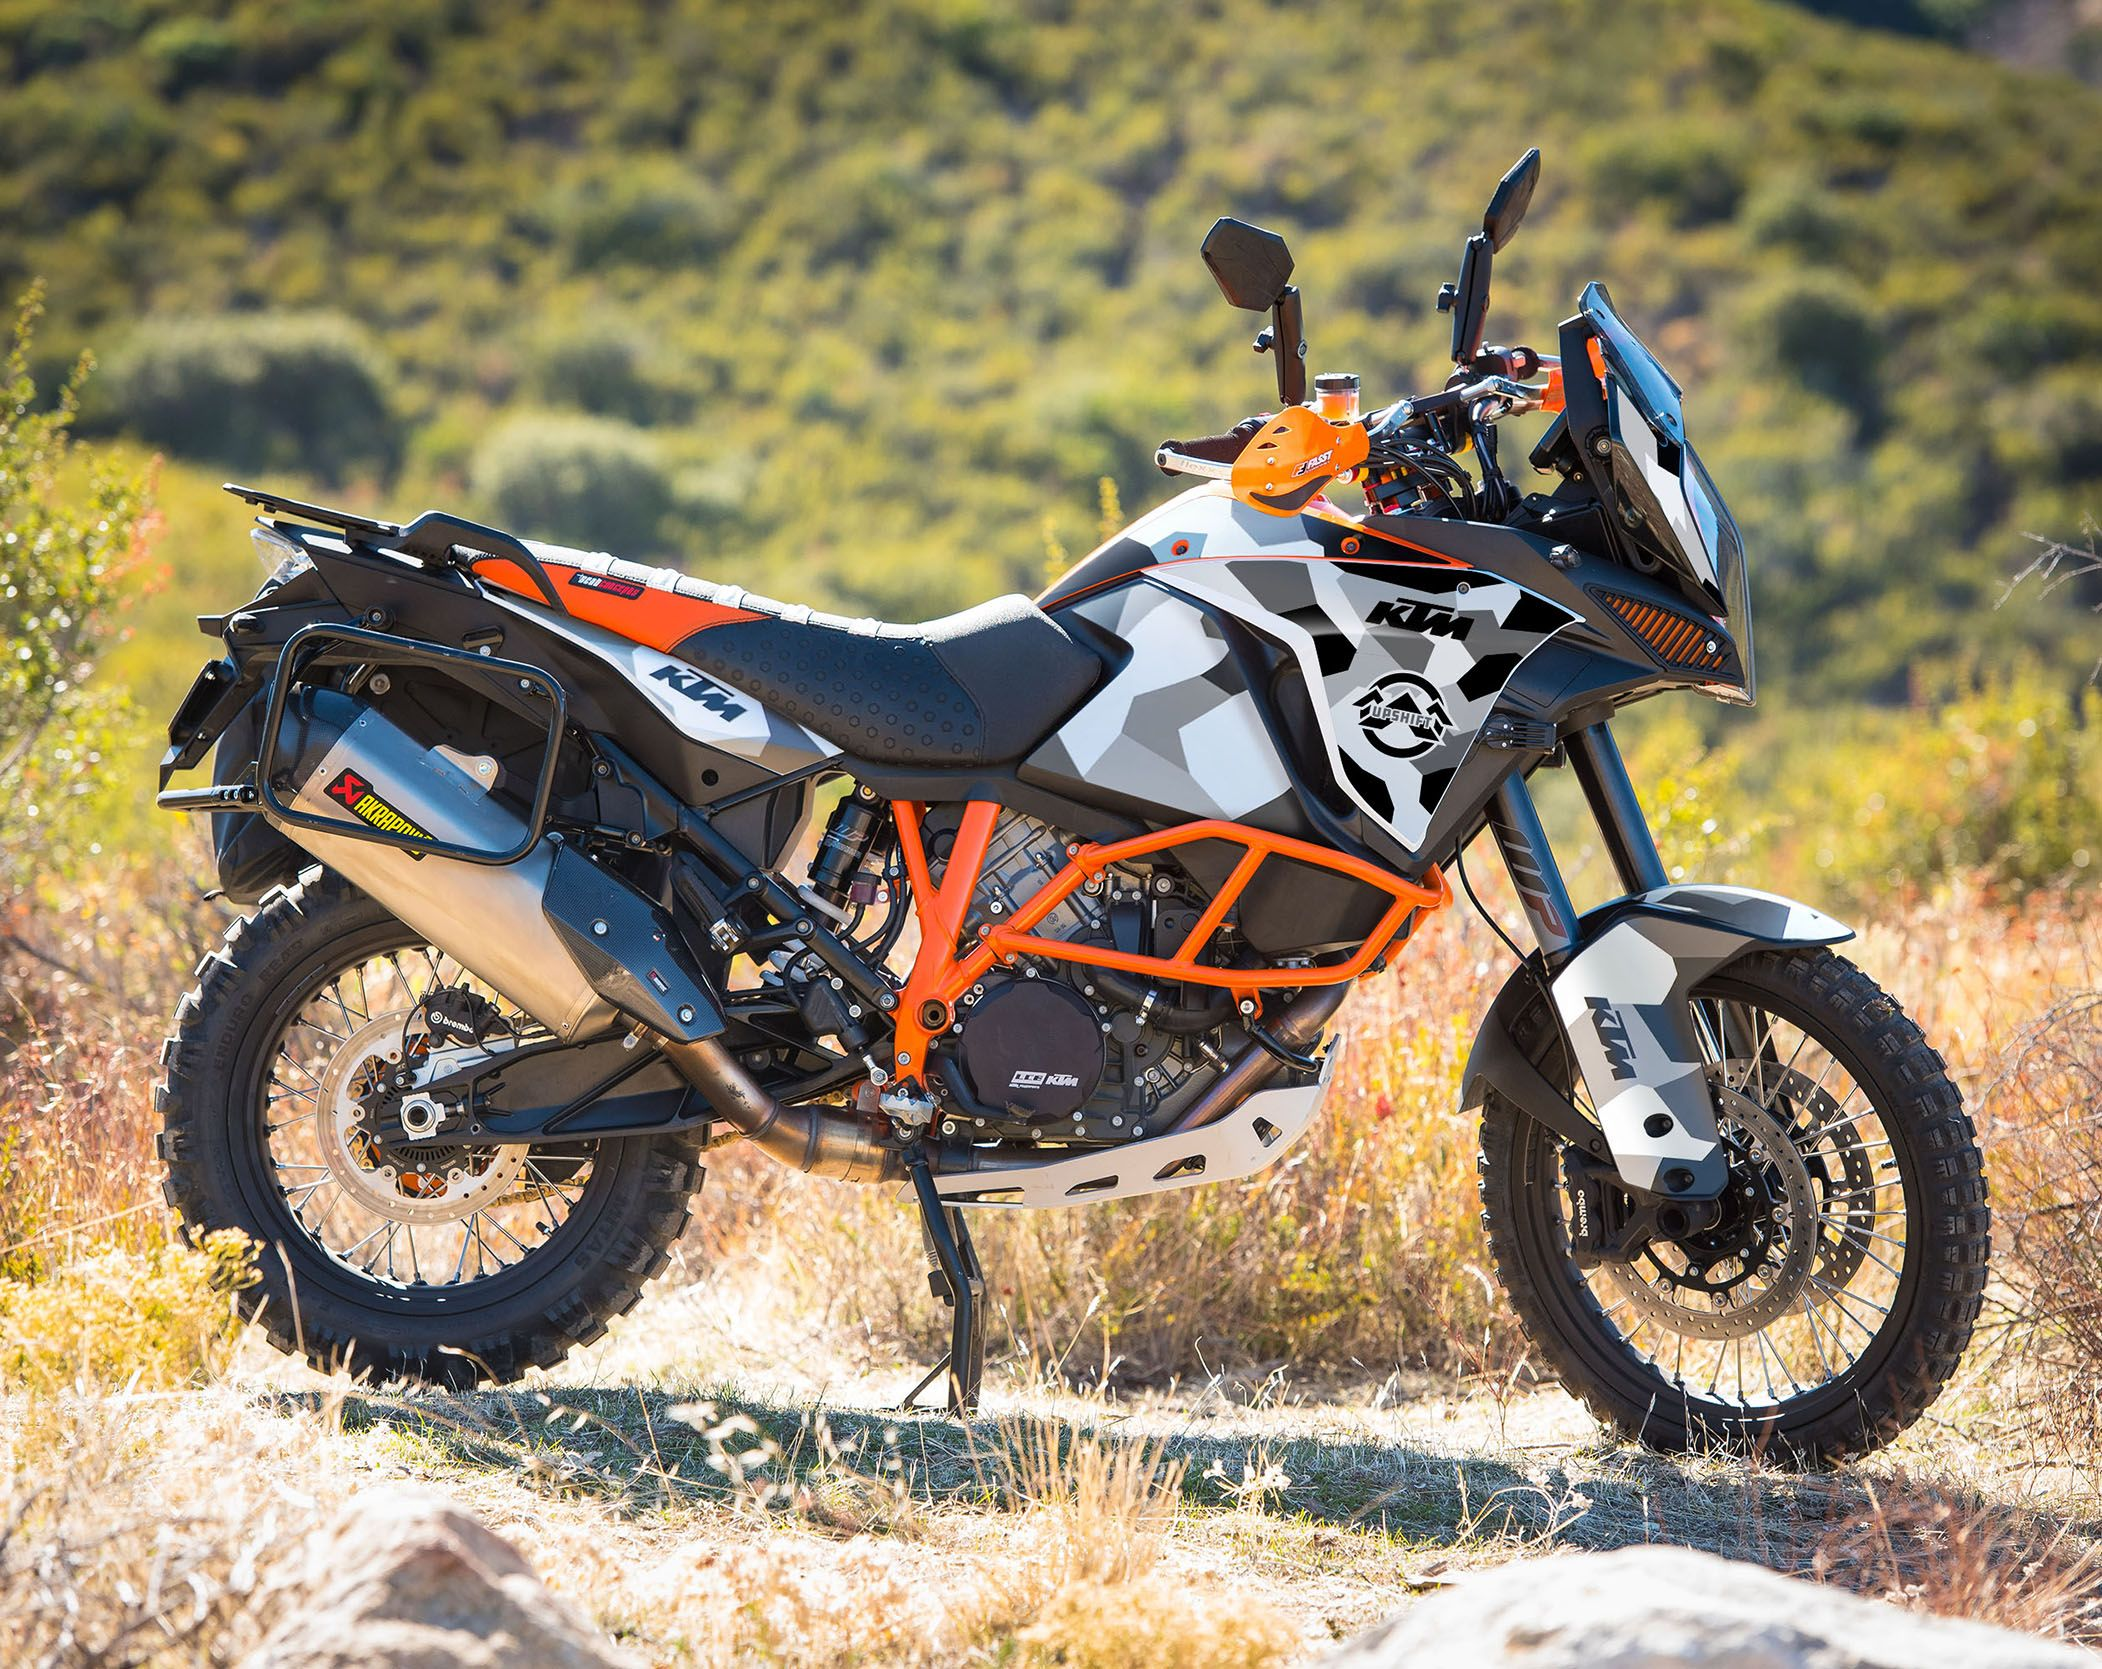 Upshiftktm 1290 Super Adventure R S Geo Camo Graphics Kit Super Adventure Ktm Ktm Adventure